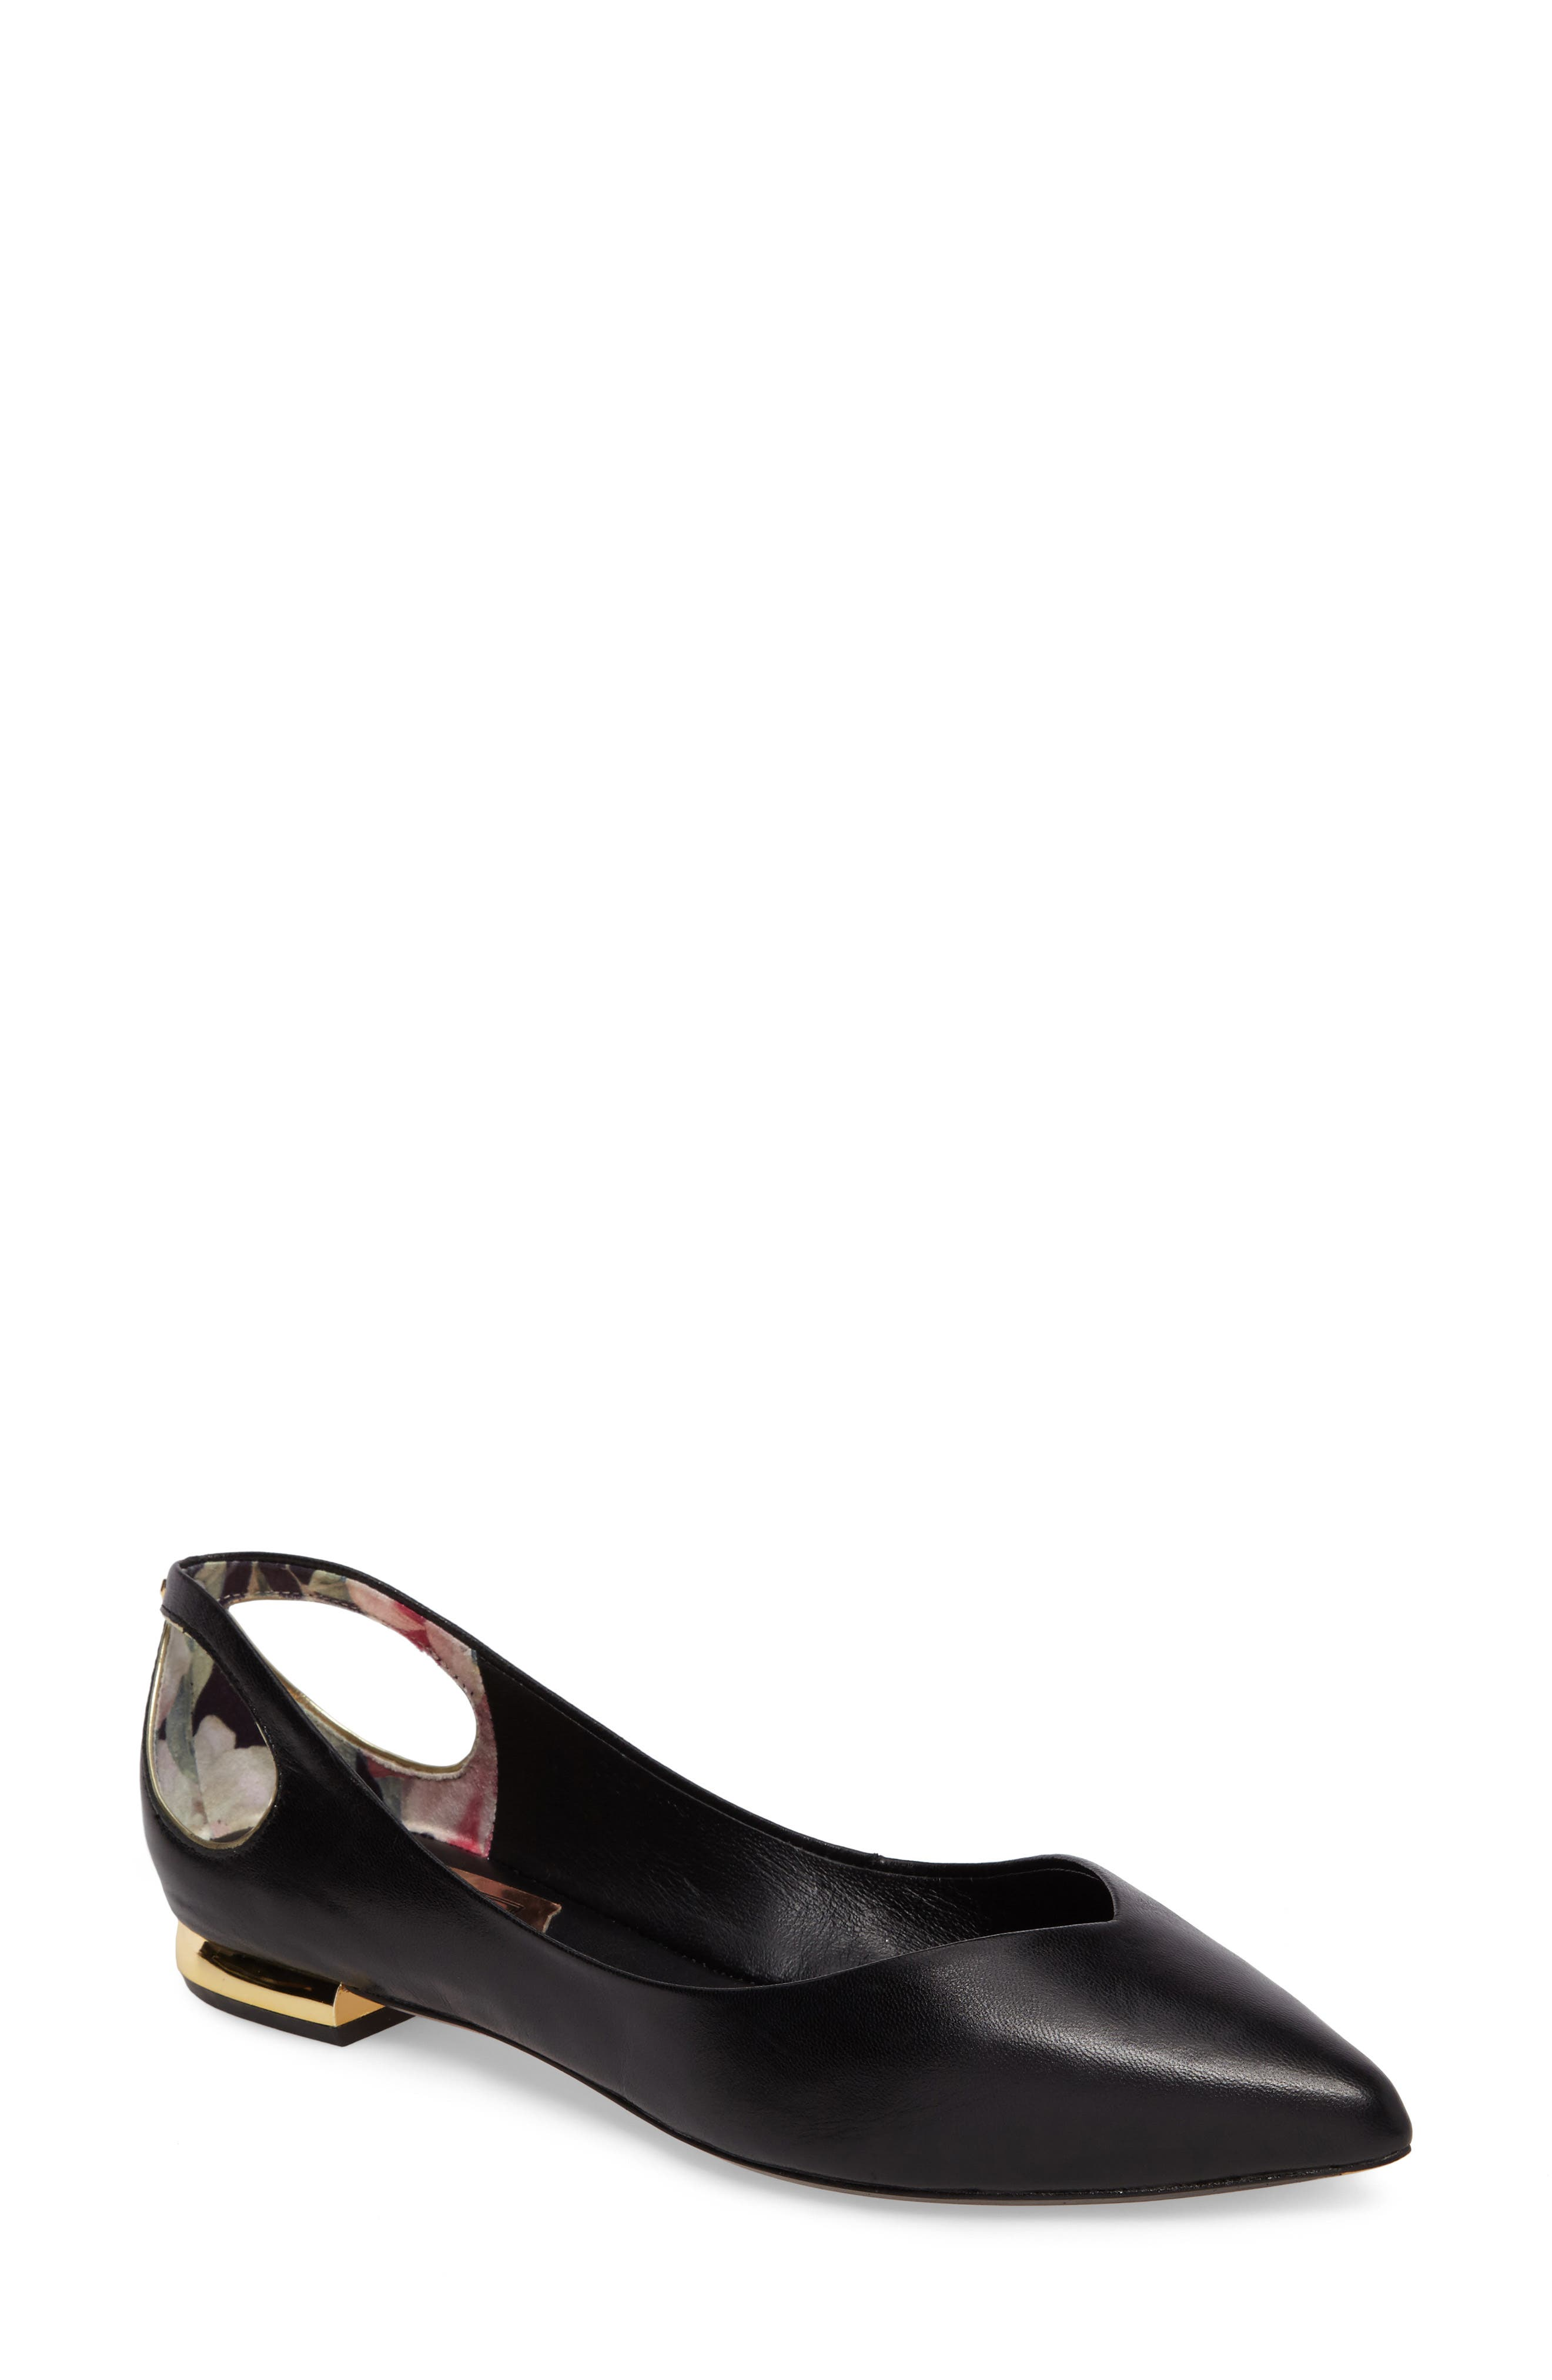 Alternate Image 1 Selected - Ted Baker London Dabih Pointy Toe Flat (Women)